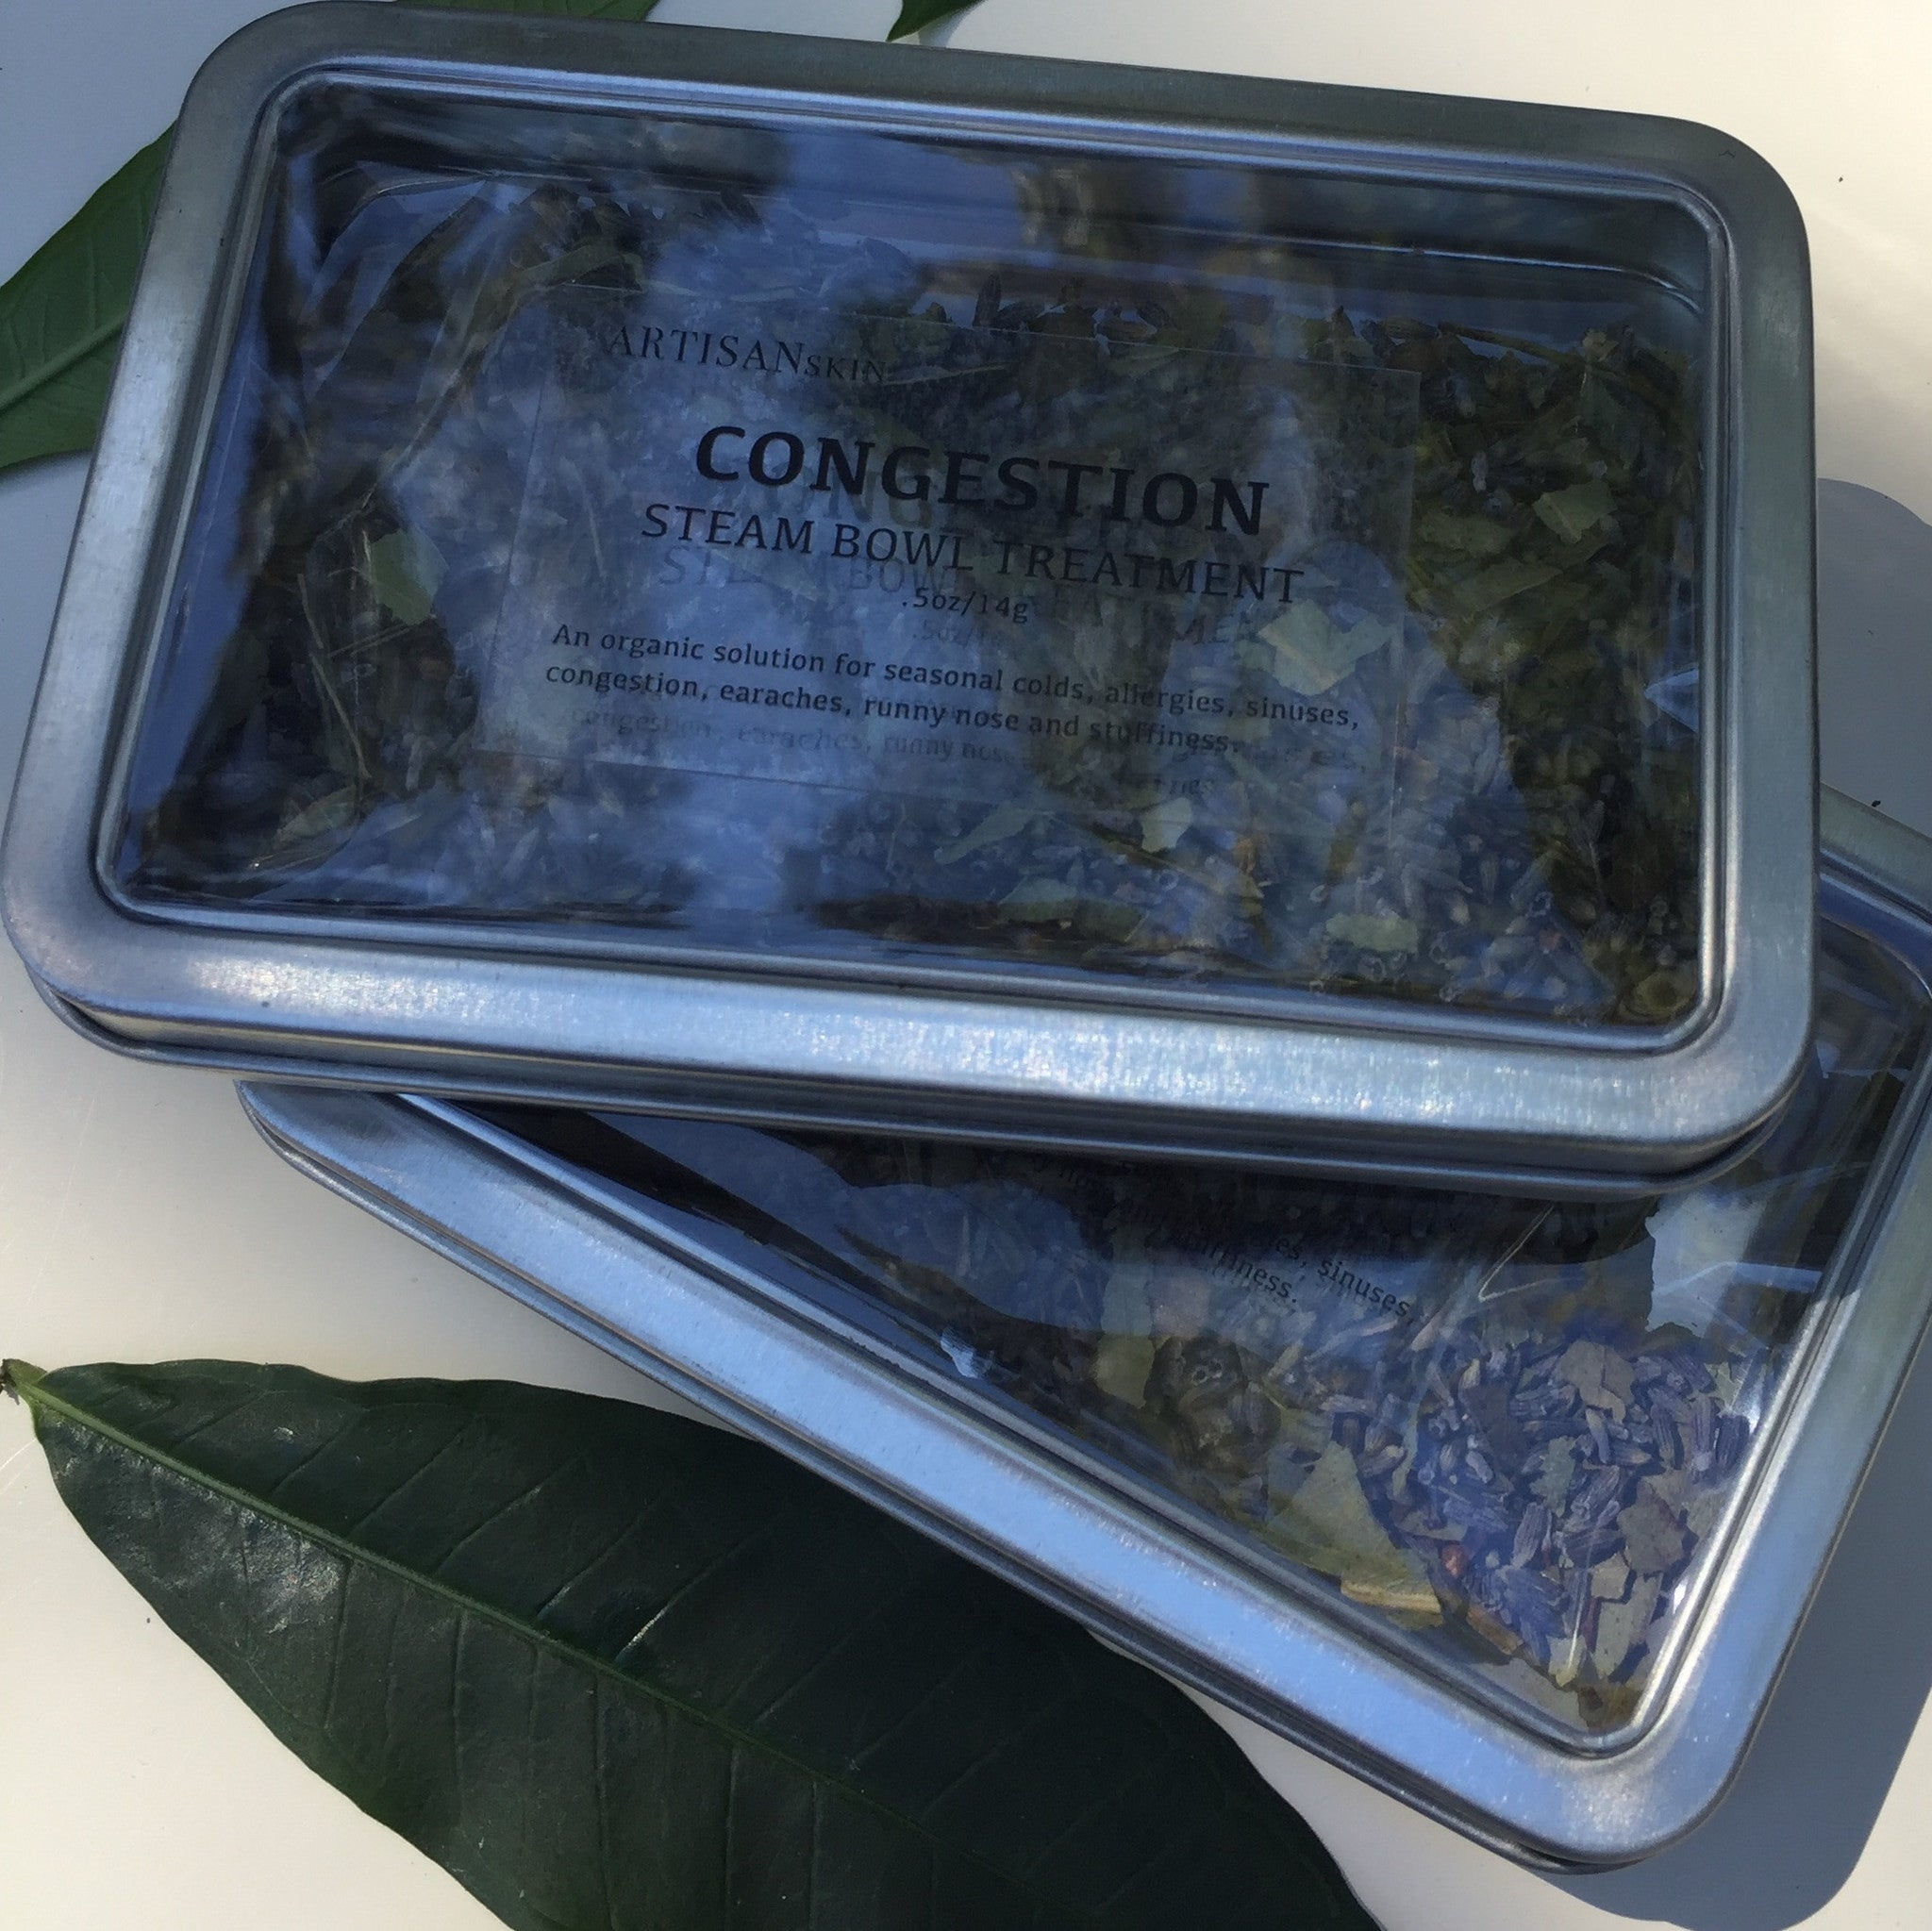 Congestion Steam Bowl Treatment